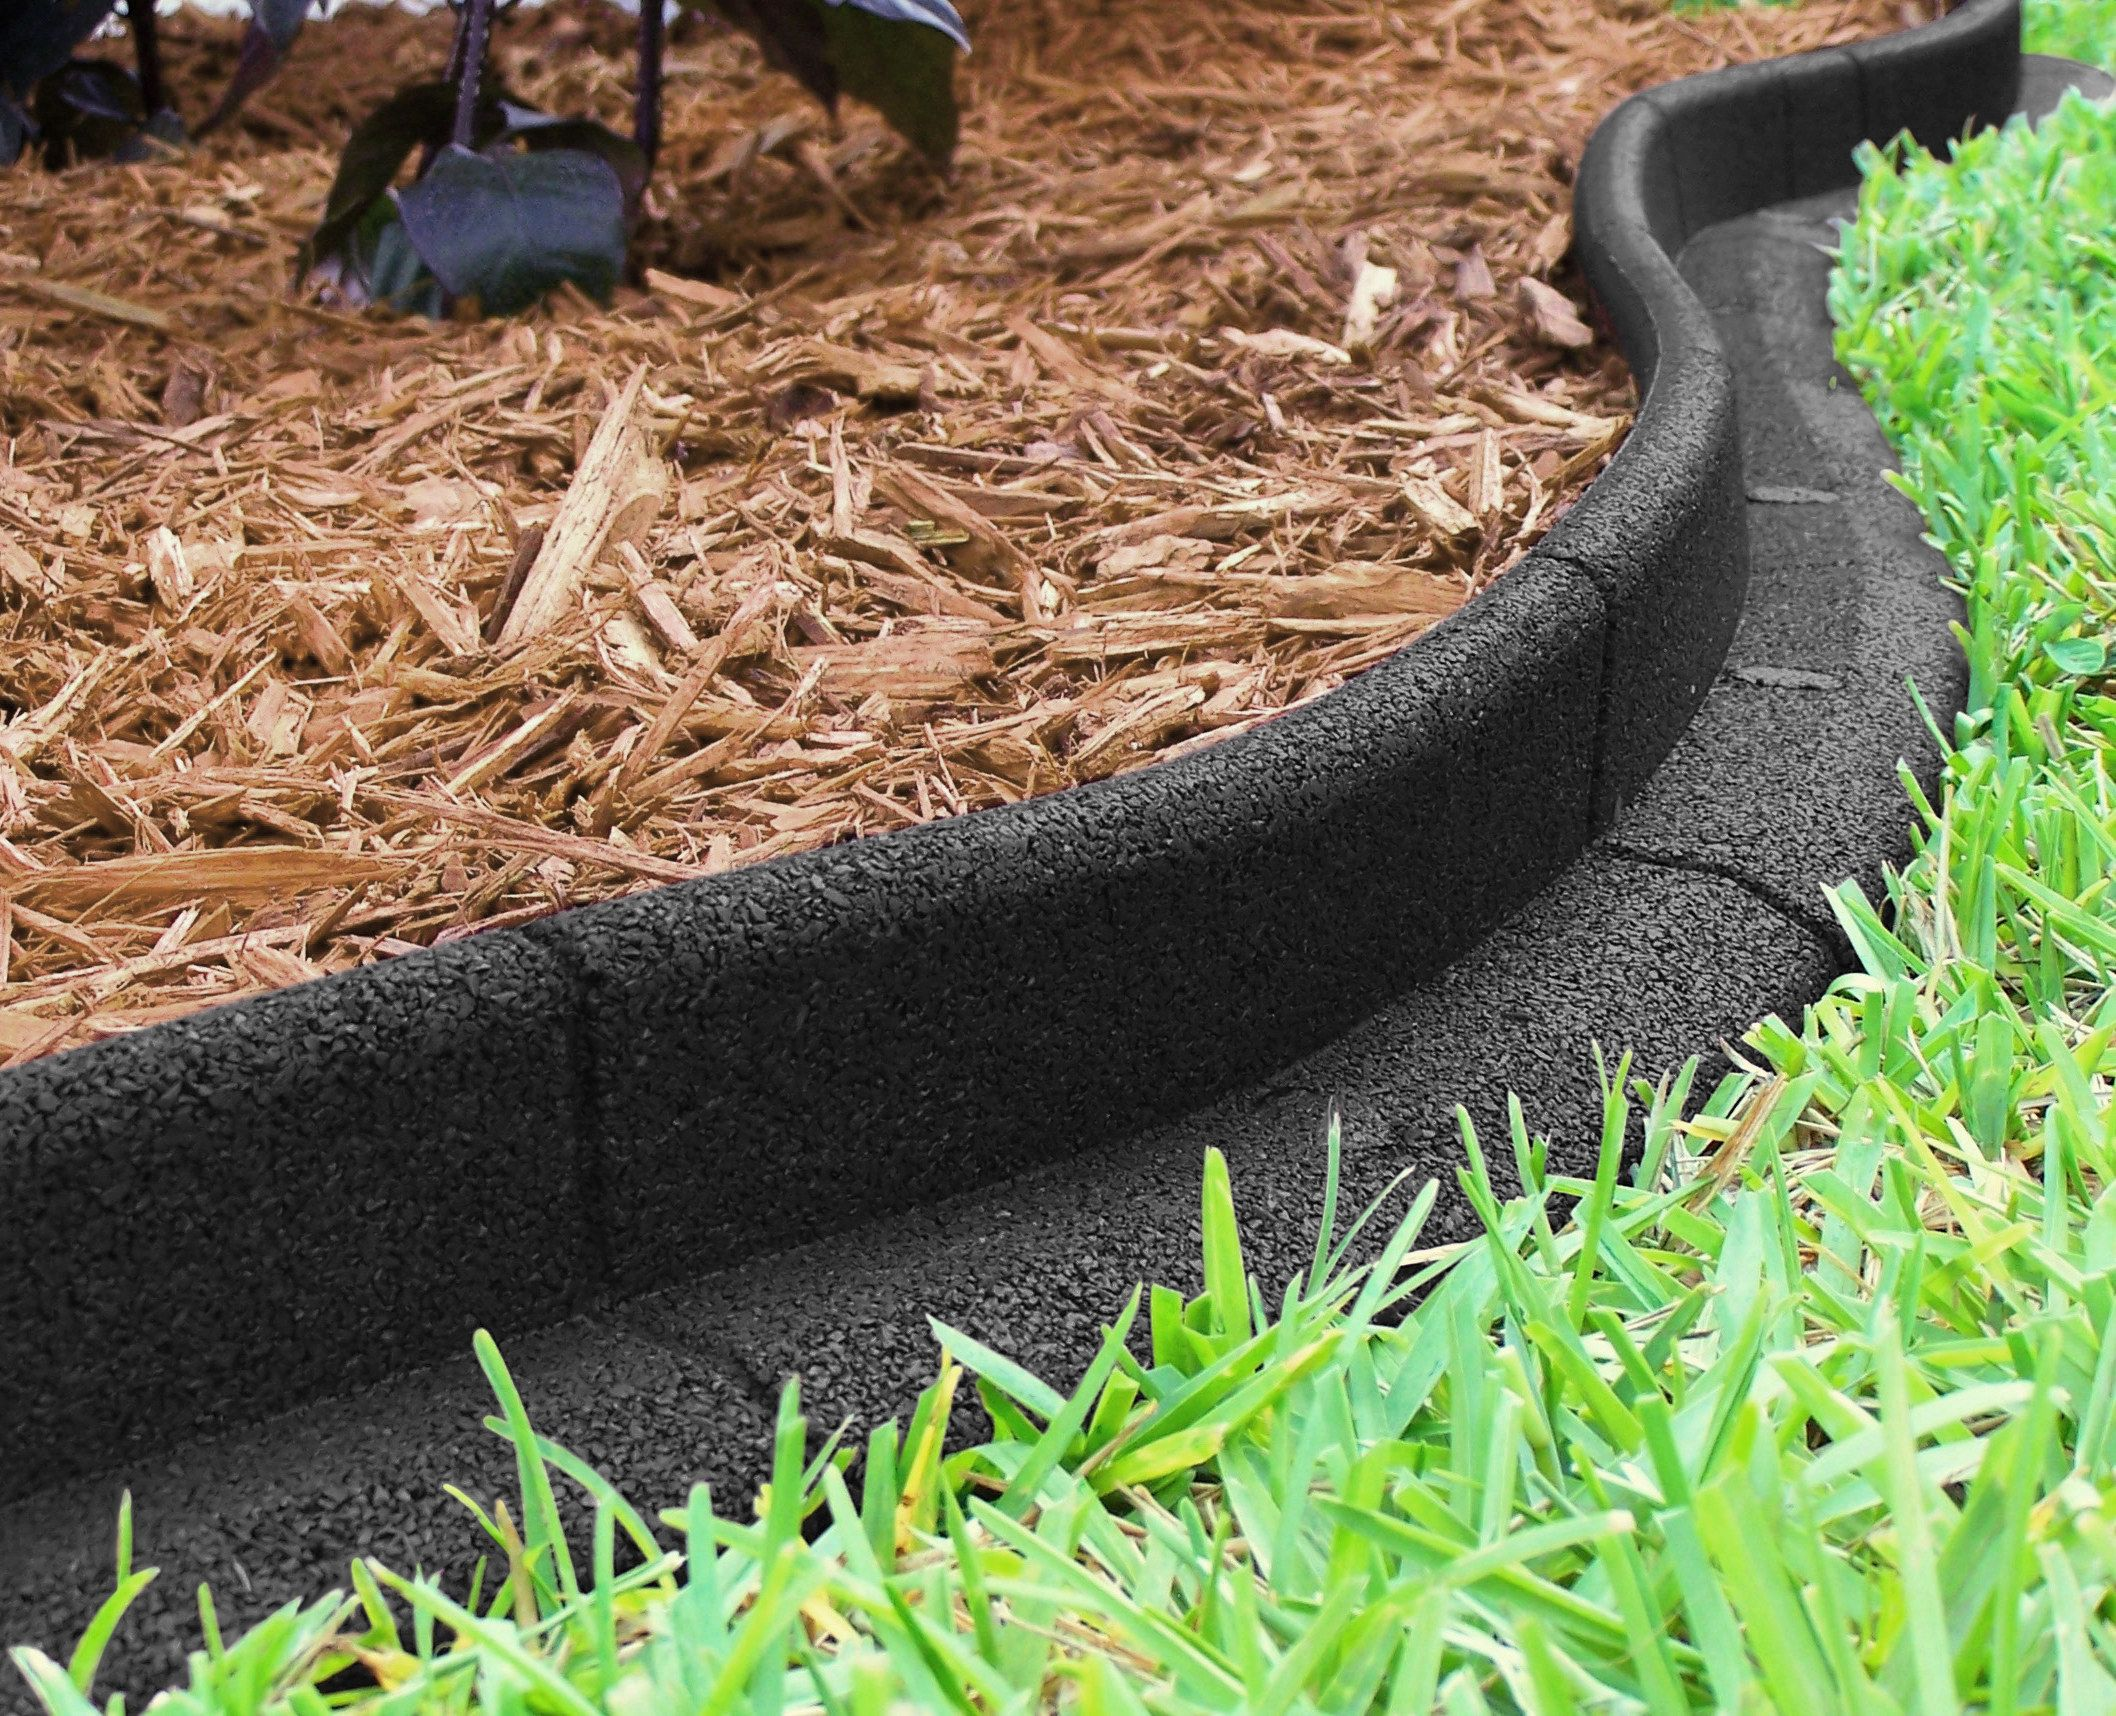 A Pack Of Landscape Edging That Doesn T Require You To Dig To Get A Clean Edge On All Your Garden Beds Landscape Edging Landscaping With Rocks Mulch Landscaping